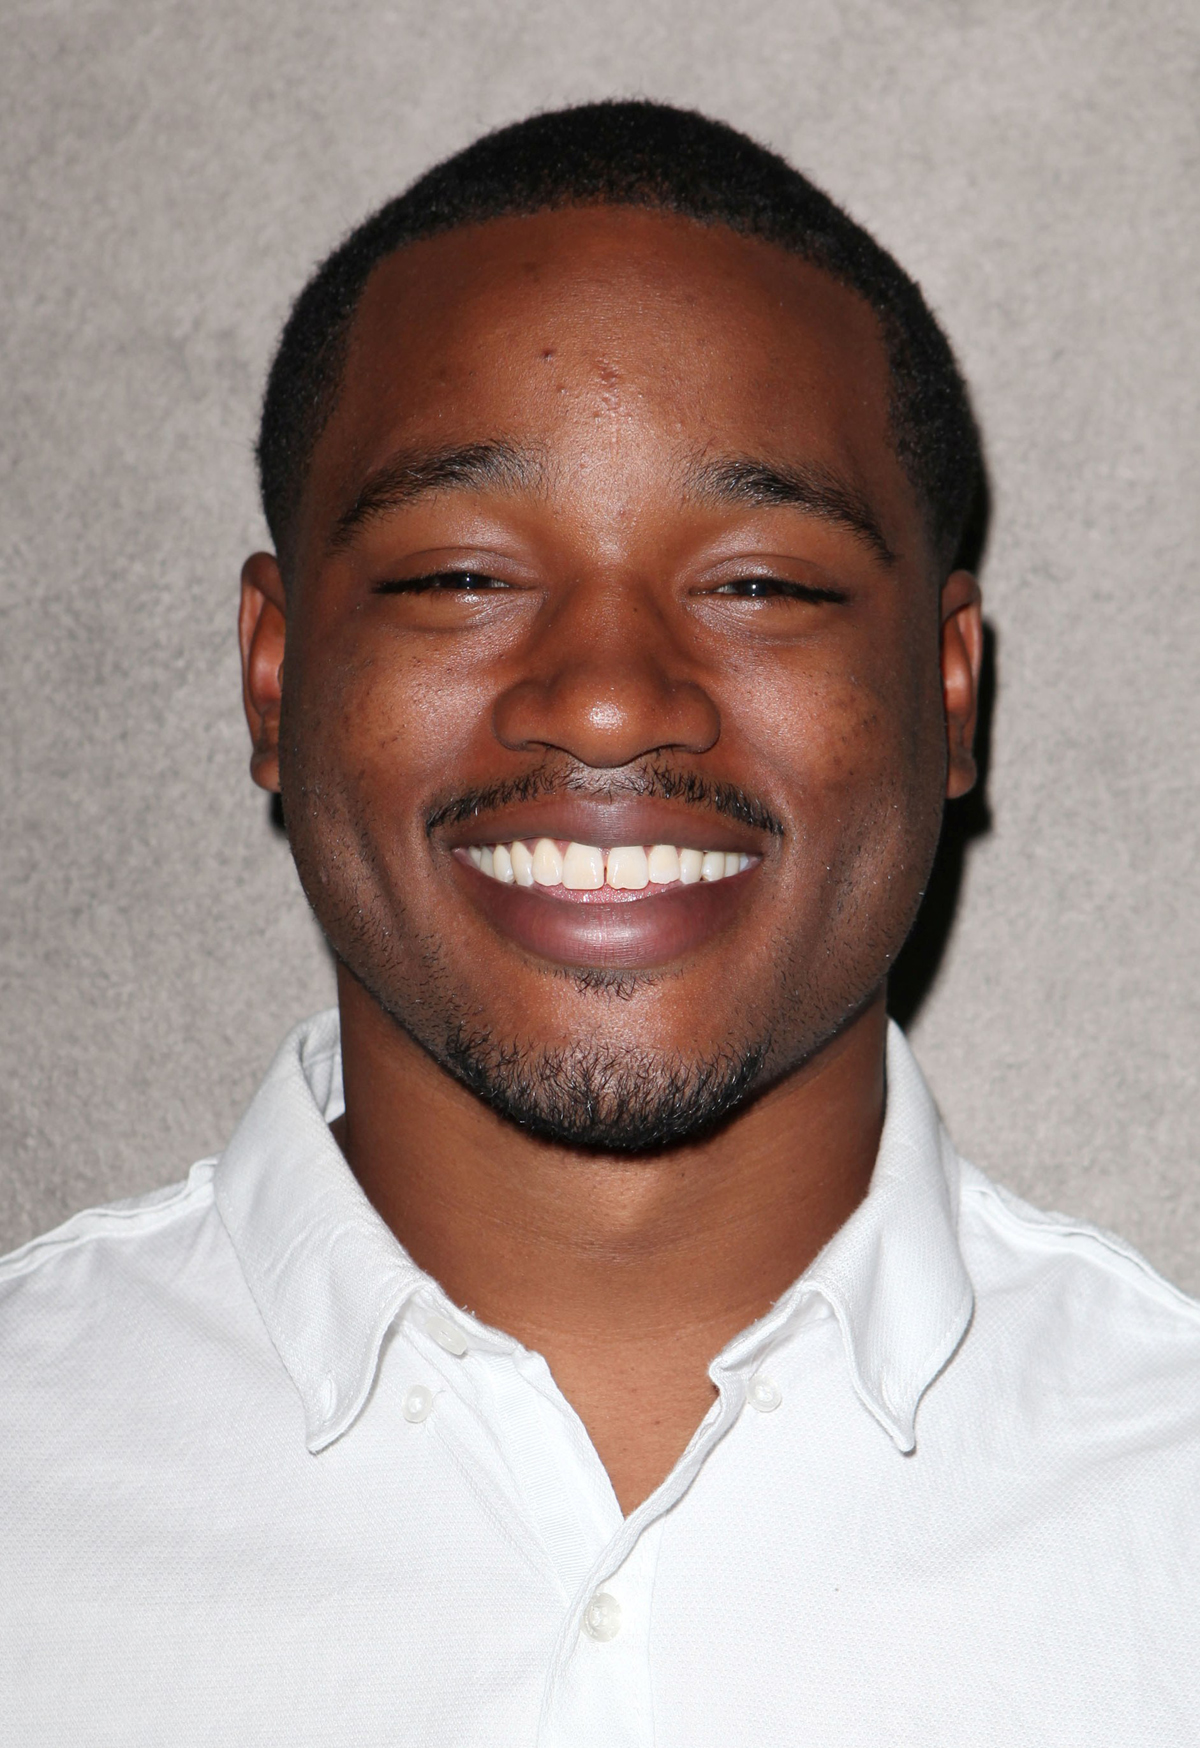 ryan coogler locksryan coogler twitter, ryan coogler net worth, ryan coogler creed, ryan coogler black panther, ryan coogler locks, ryan coogler imdb, ryan coogler contact, ryan coogler movies, ryan coogler facebook, ryan coogler fruitvale station, ryan coogler wife, ryan coogler fiance, ryan coogler creed interview, ryan coogler height, ryan coogler instagram, ryan coogler gap, ryan coogler bio, ryan coogler films, ryan coogler agent, ryan coogler awards